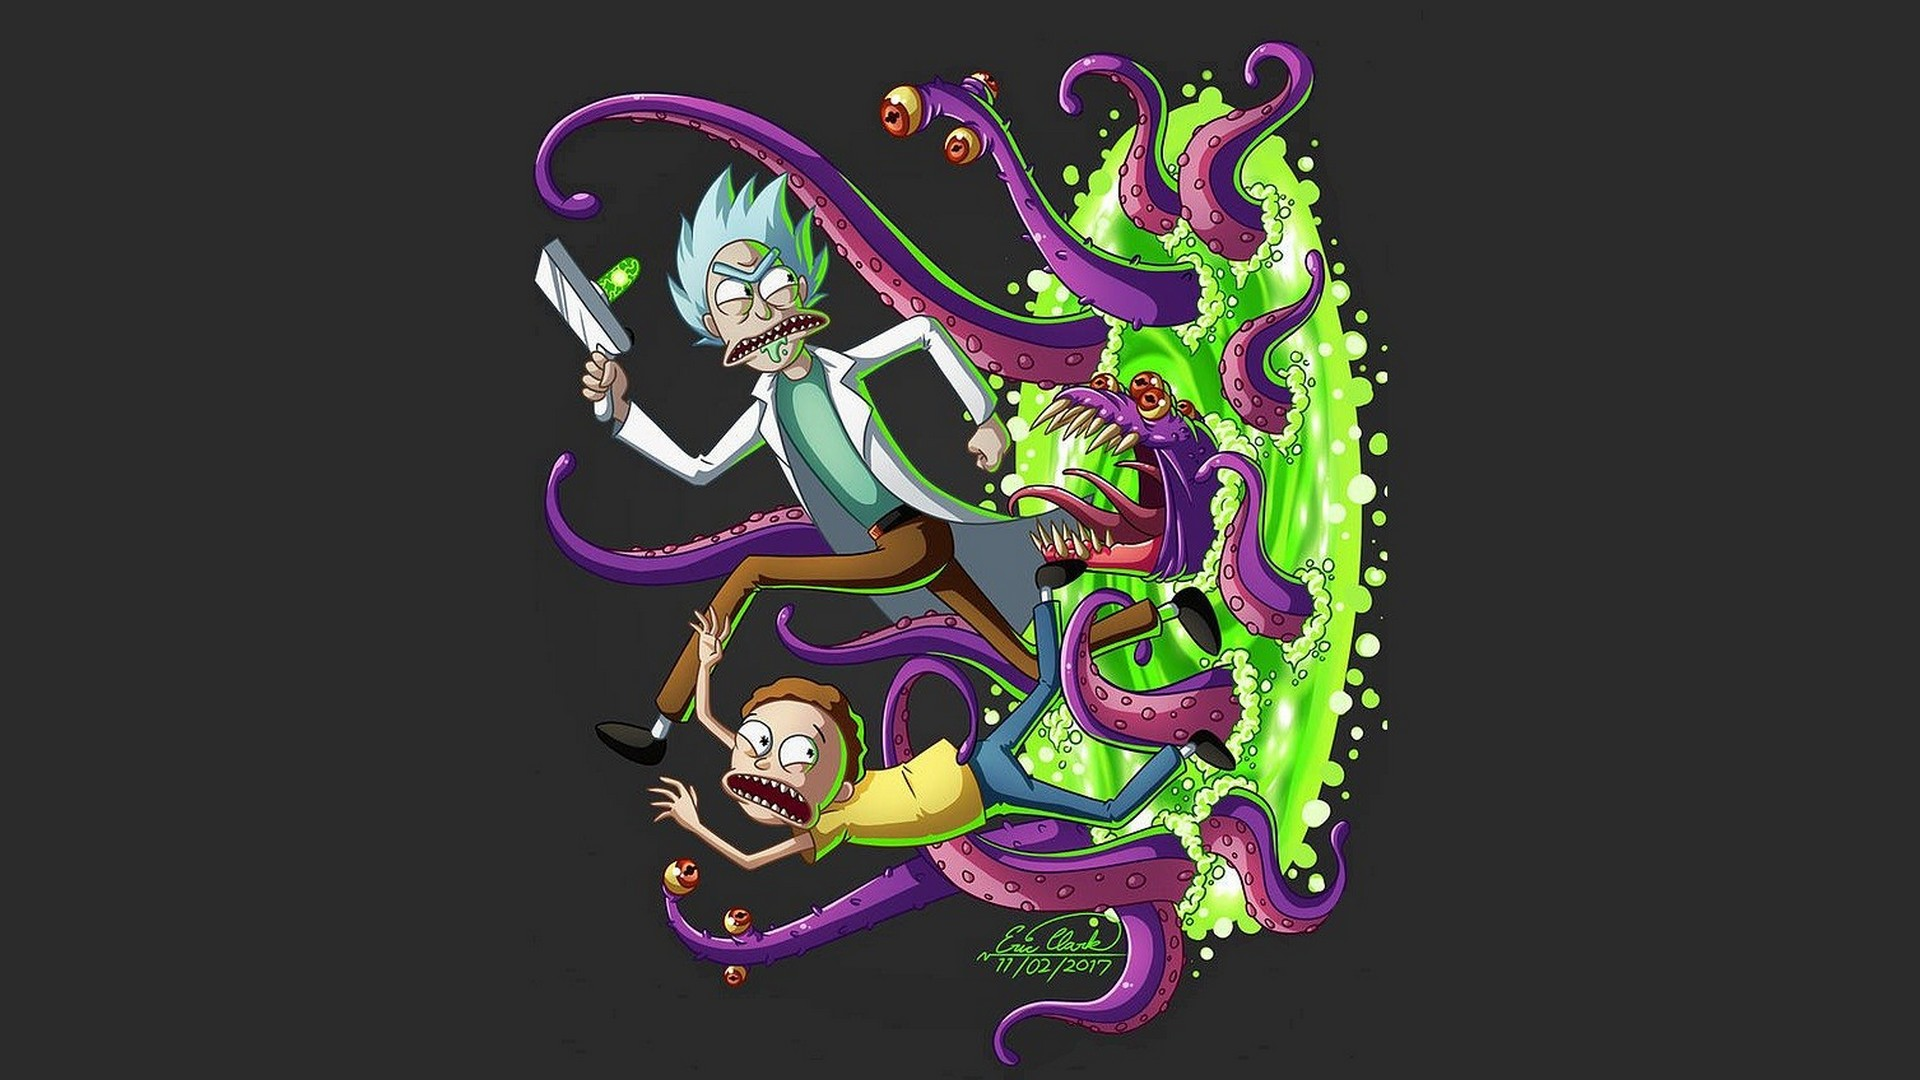 Wallpaper New Rick and Morty with image resolution 1920x1080 pixel. You can use this wallpaper as background for your desktop Computer Screensavers, Android or iPhone smartphones